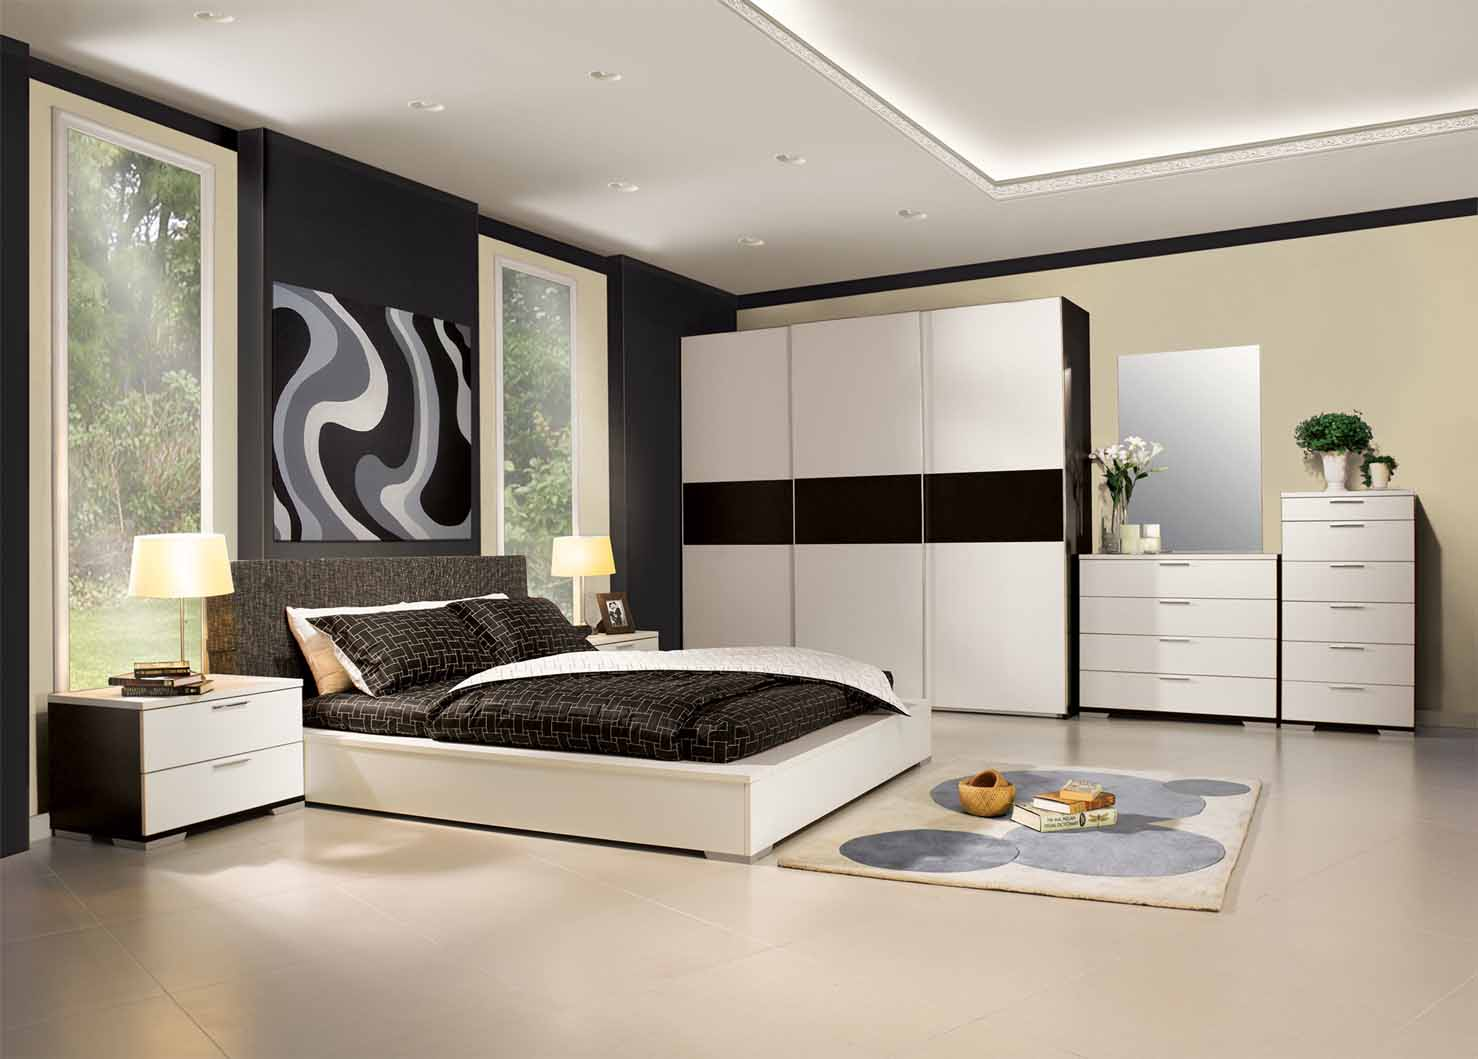 11 Best Bedroom Furniture 2012 ~ Home Interior And Furniture Collection